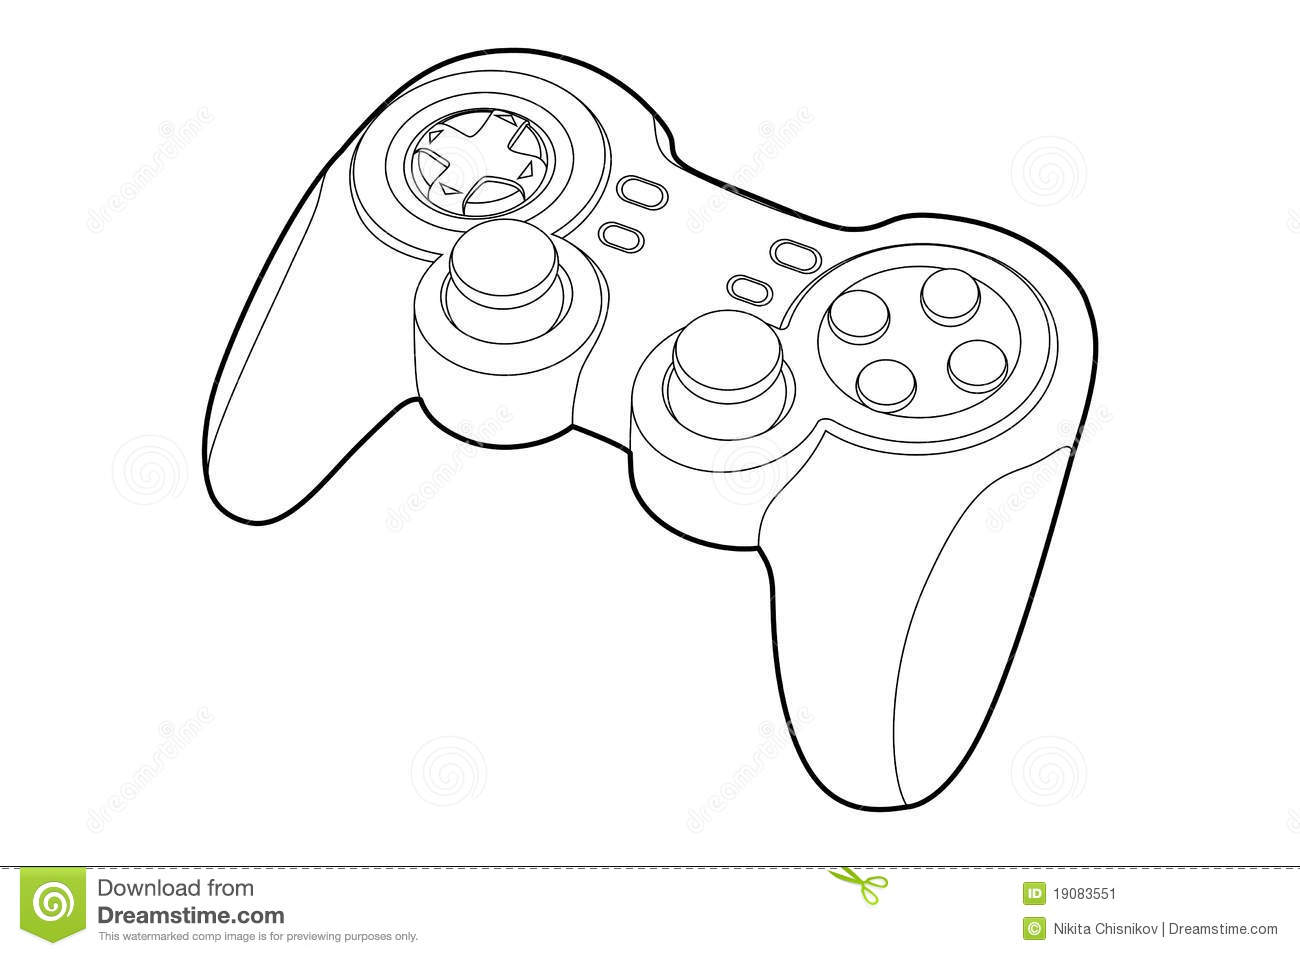 Game-pad stock vector. Illustration of illustration, games